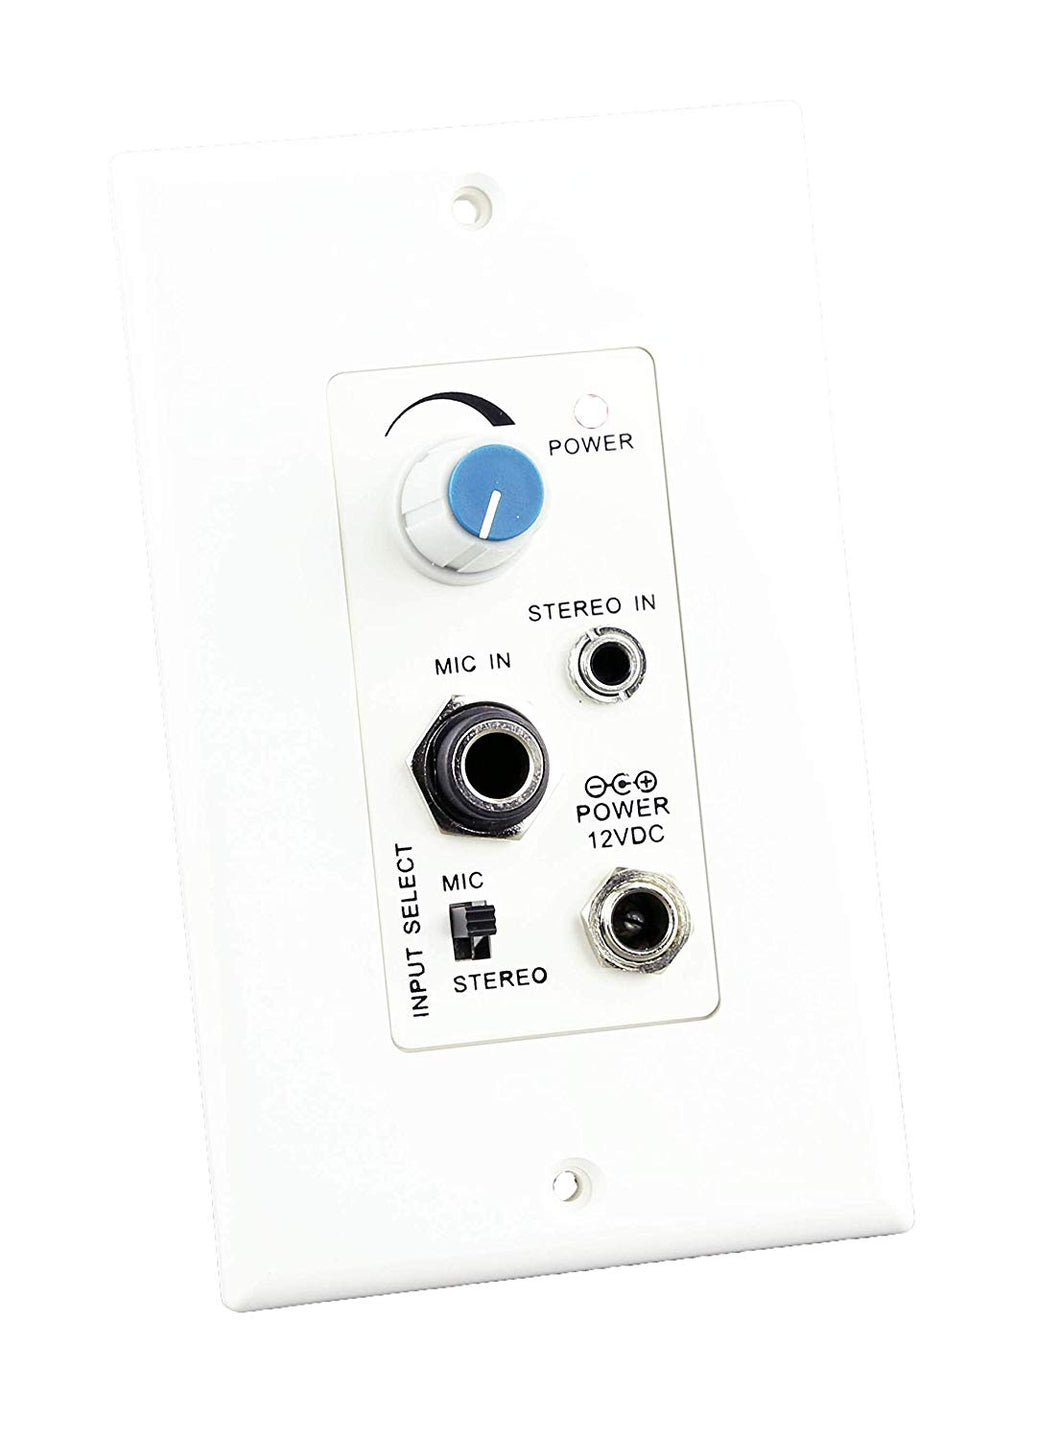 KENUCO Microphone and Stereo AudioPower Amplifier- Wall Plate Microphone and Stereo Audio Power